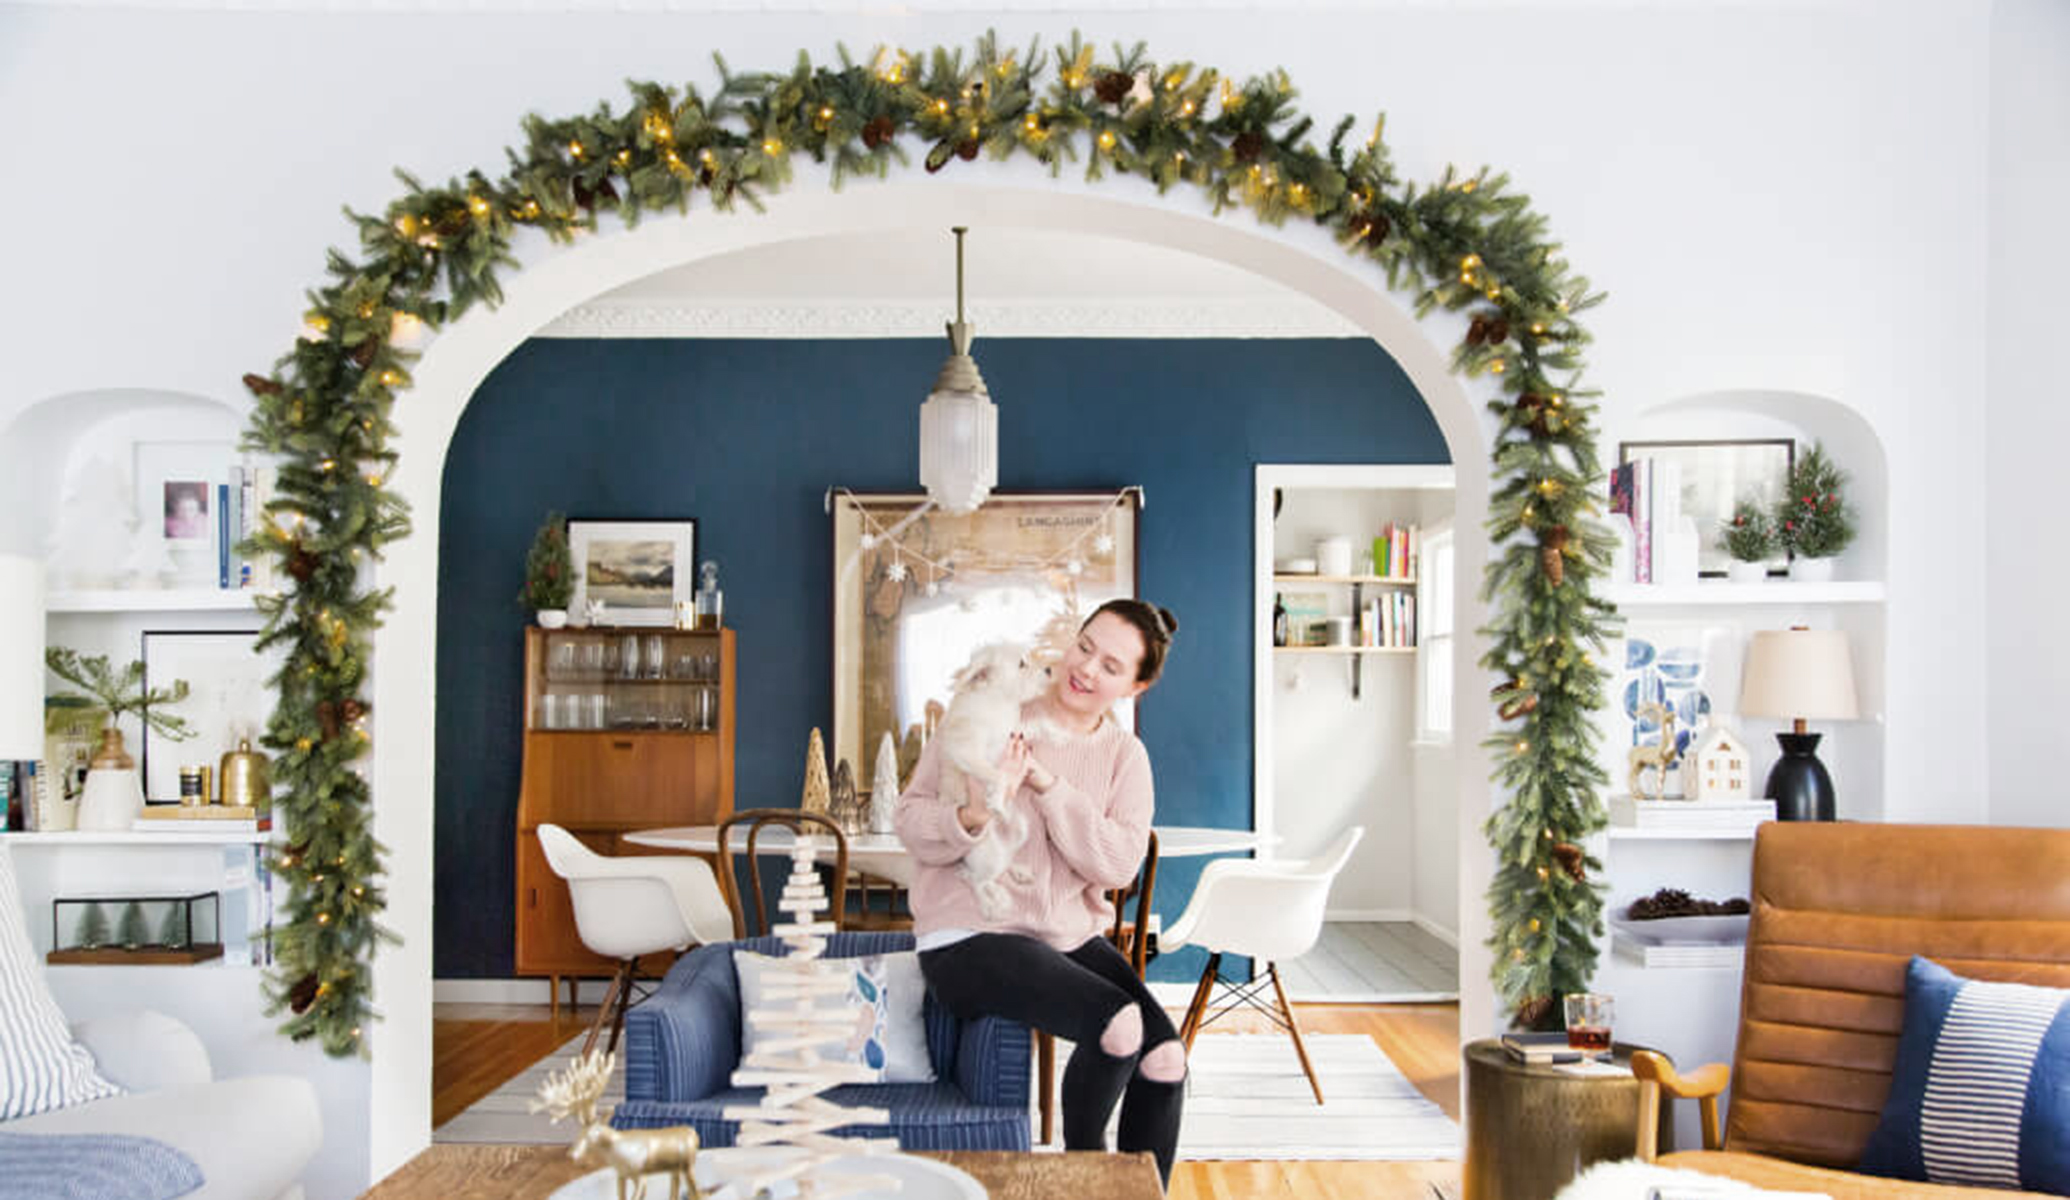 04_Ginny_Macdonald_Holiday-Decorating_Ginny_Living-Room_Dining-Room_Christmas_White-Neutral_Cozy-Cottage_featured Image